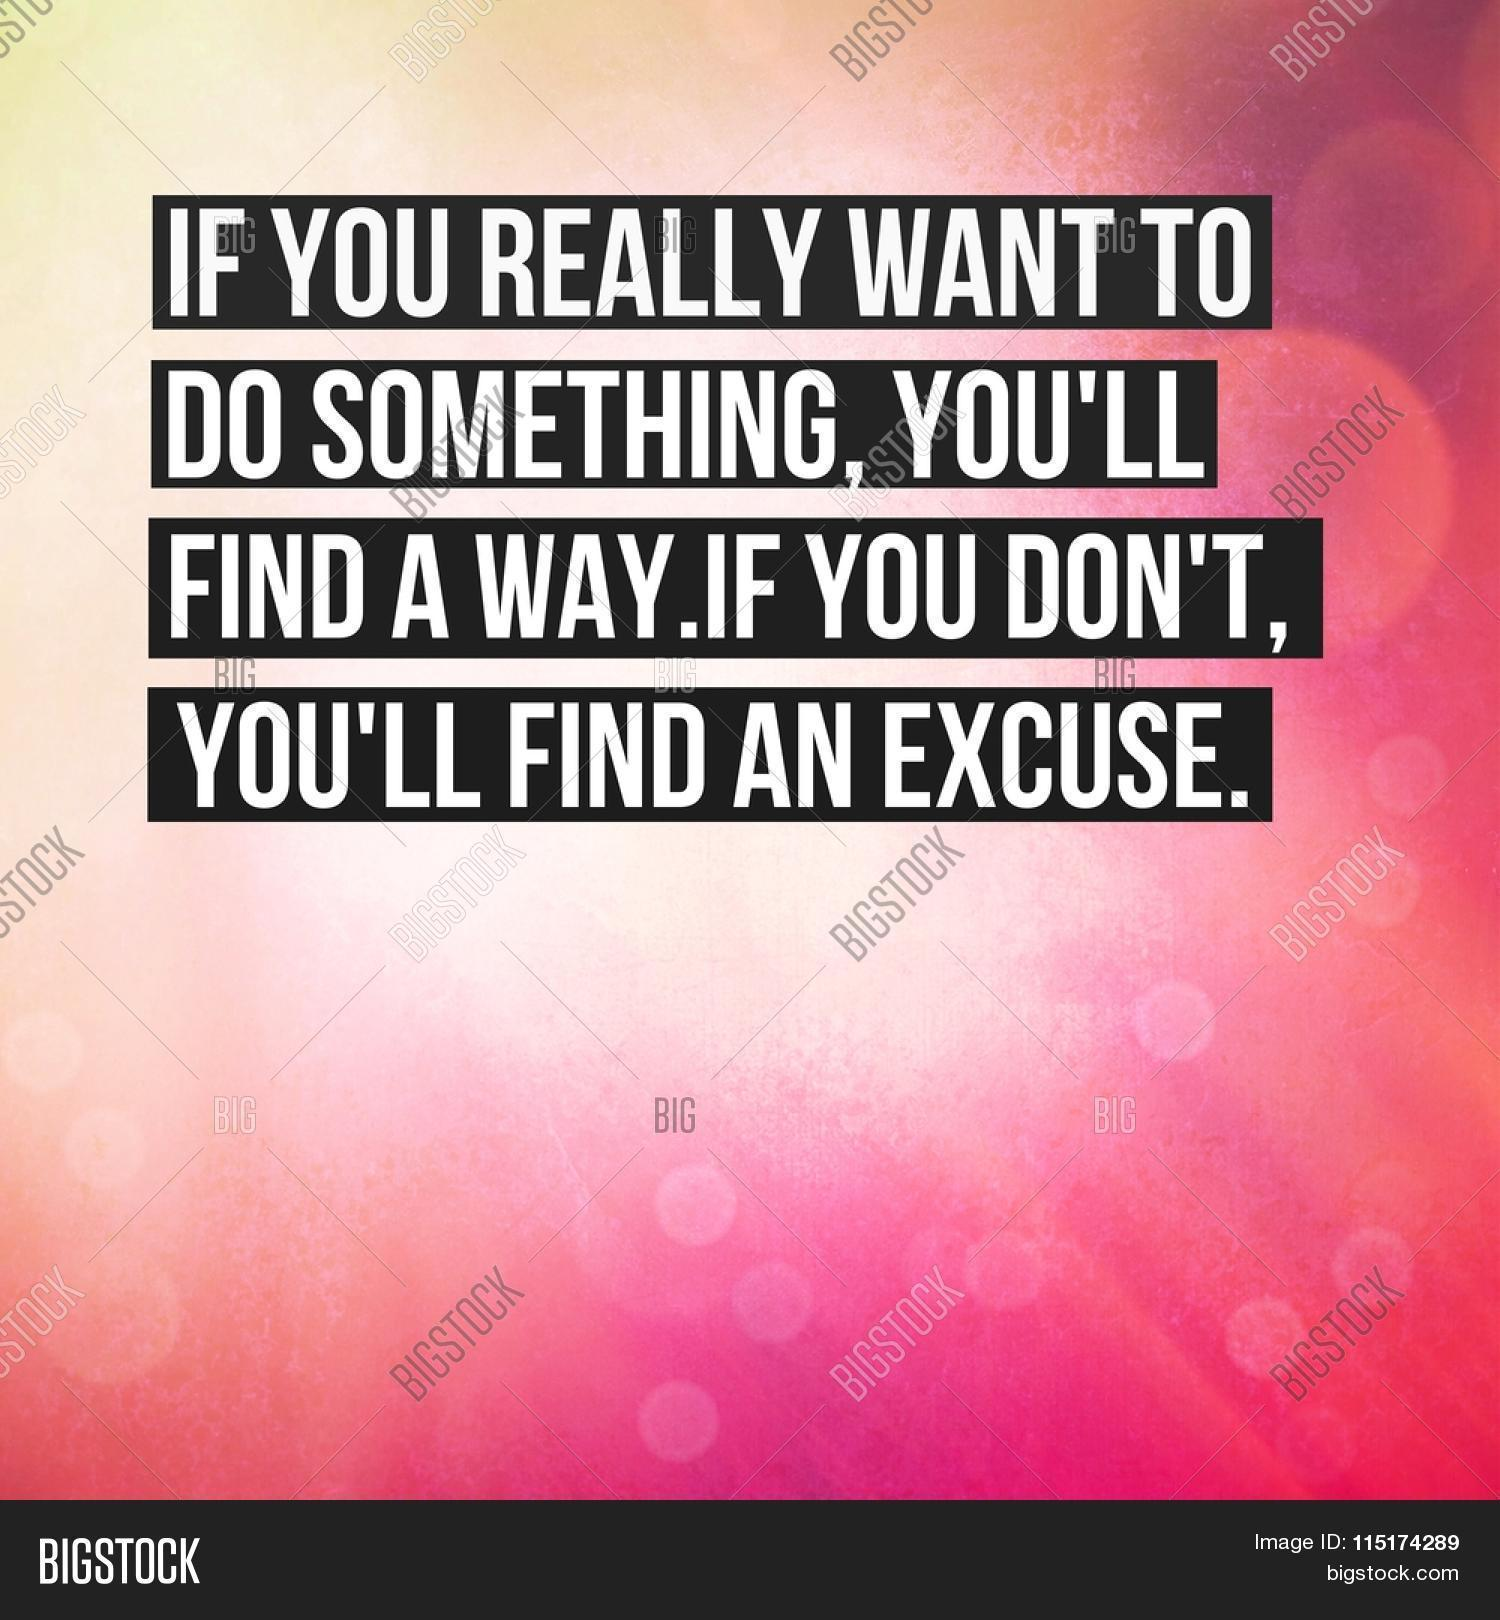 If you want to do something will find a way